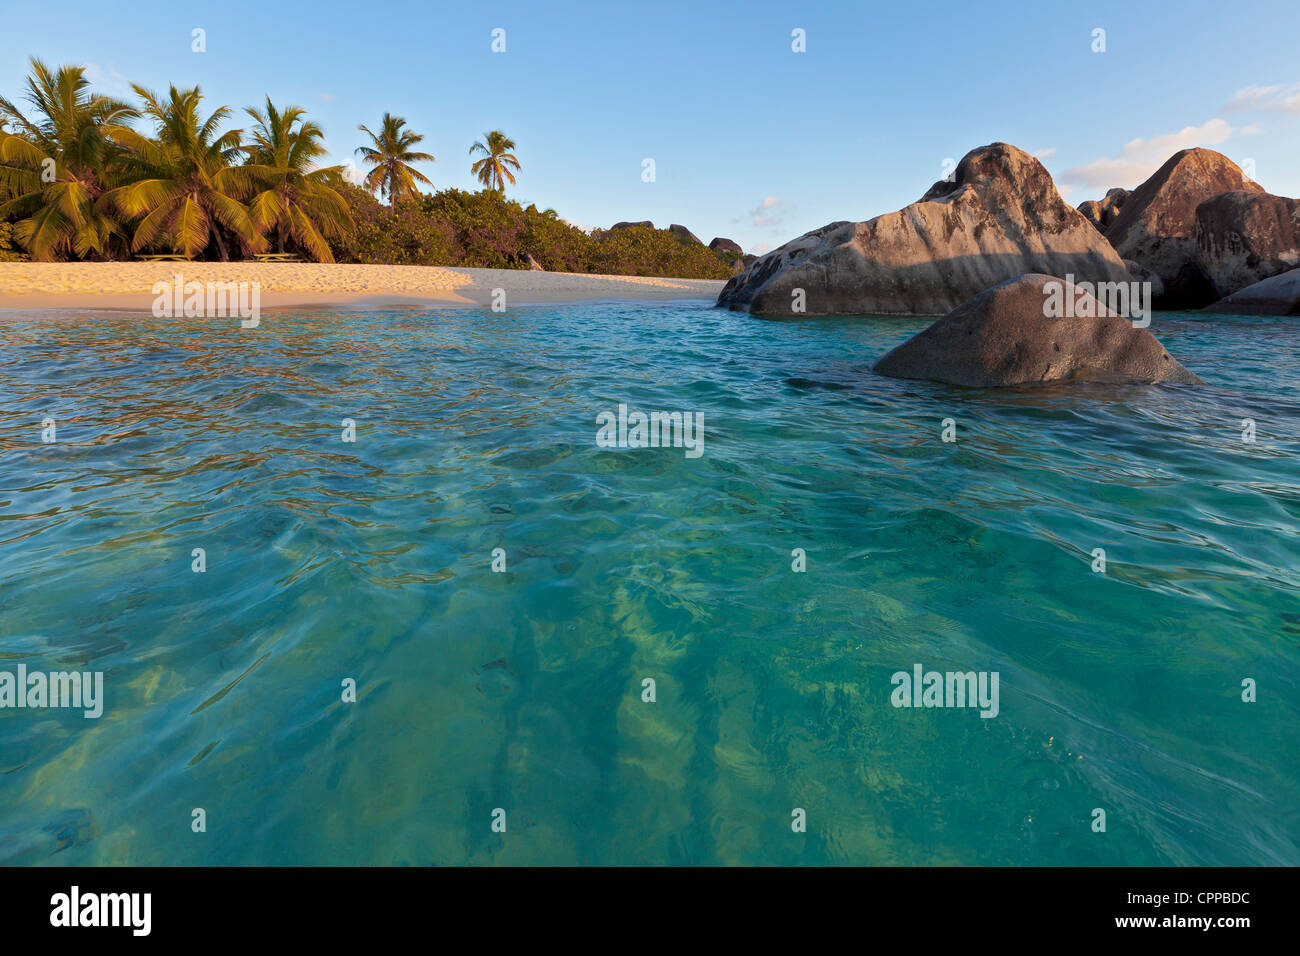 Virgin Gorda, British Virgin Islands in the Caribbean: Protected pool among the granite boulders on the beach known - Stock Image